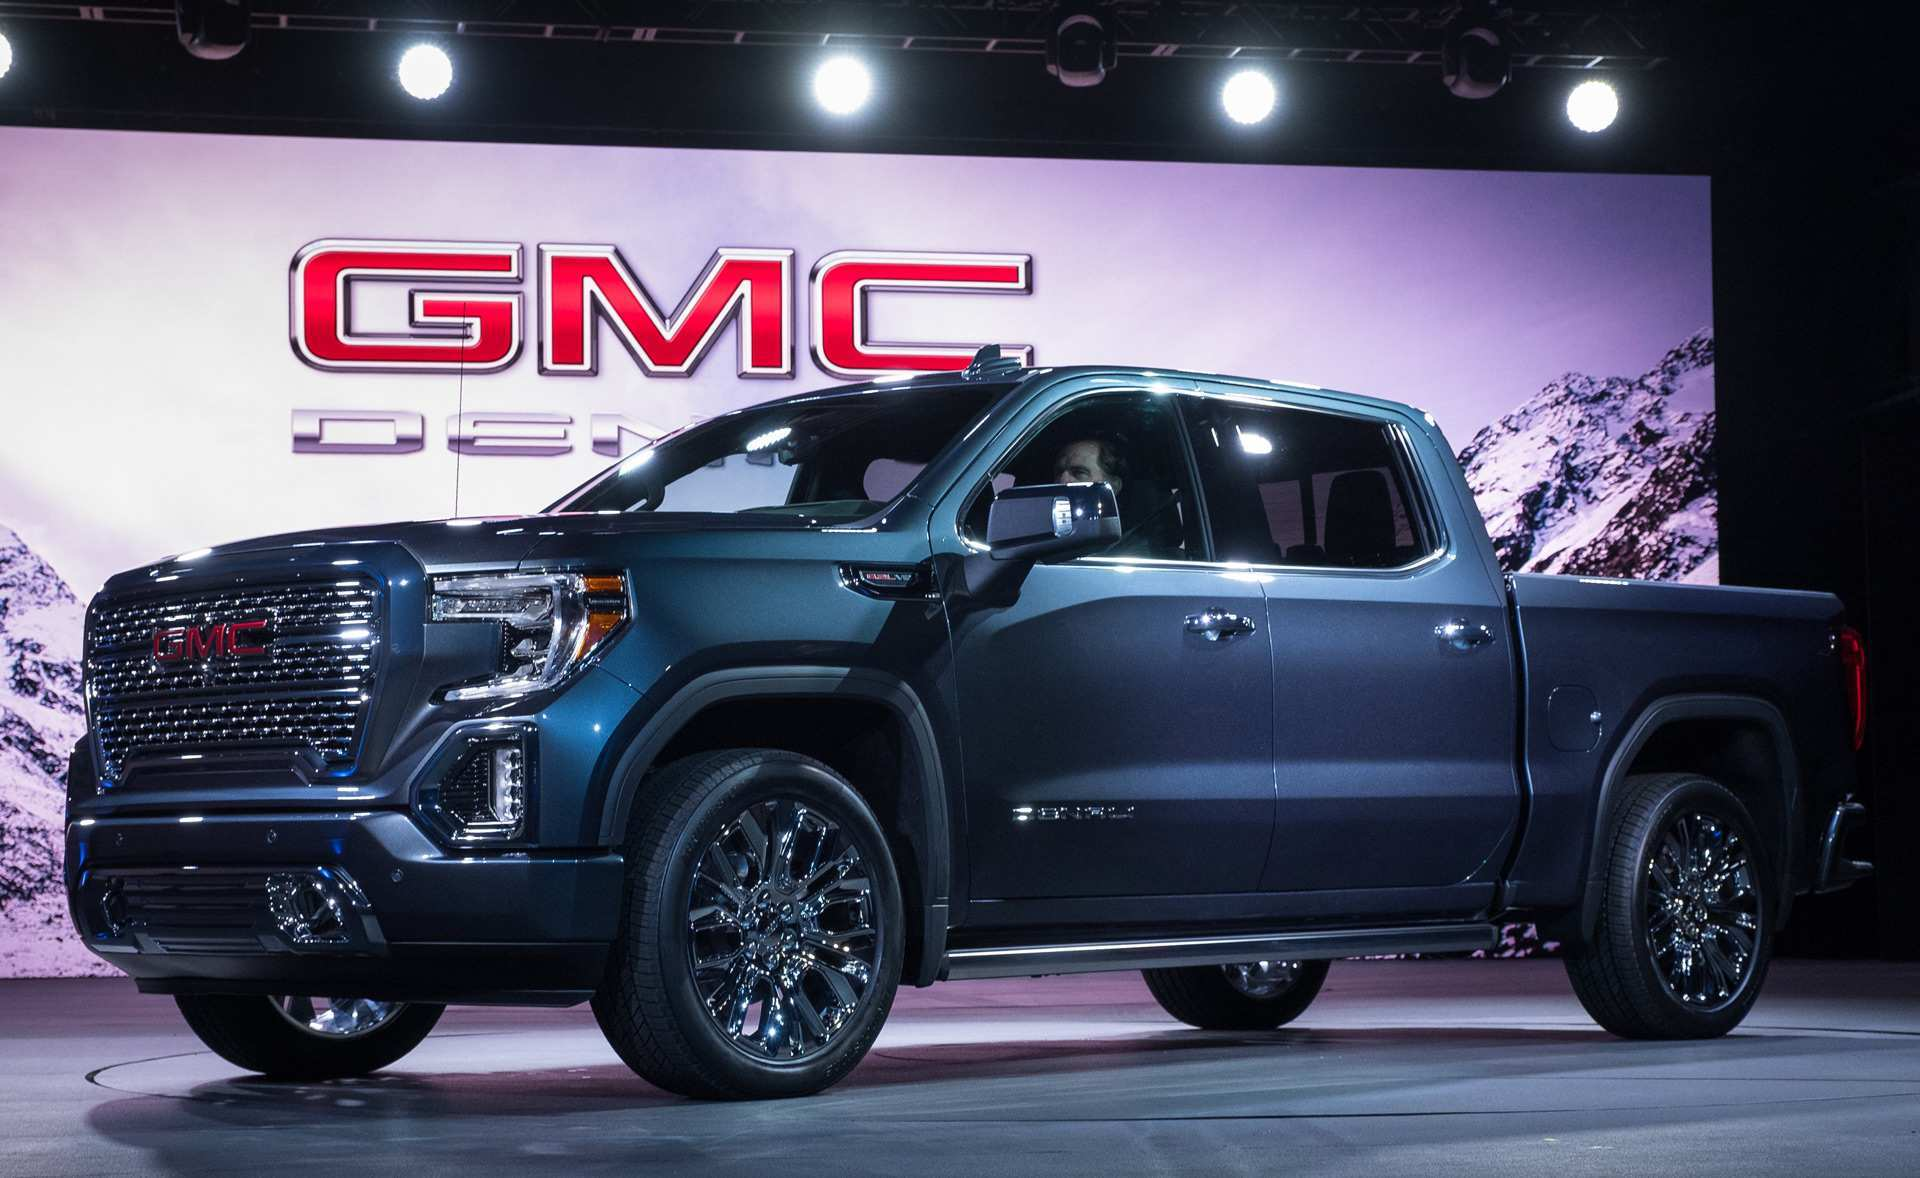 35 All New 2019 Gmc Sierra Images Price and Review for 2019 Gmc Sierra Images